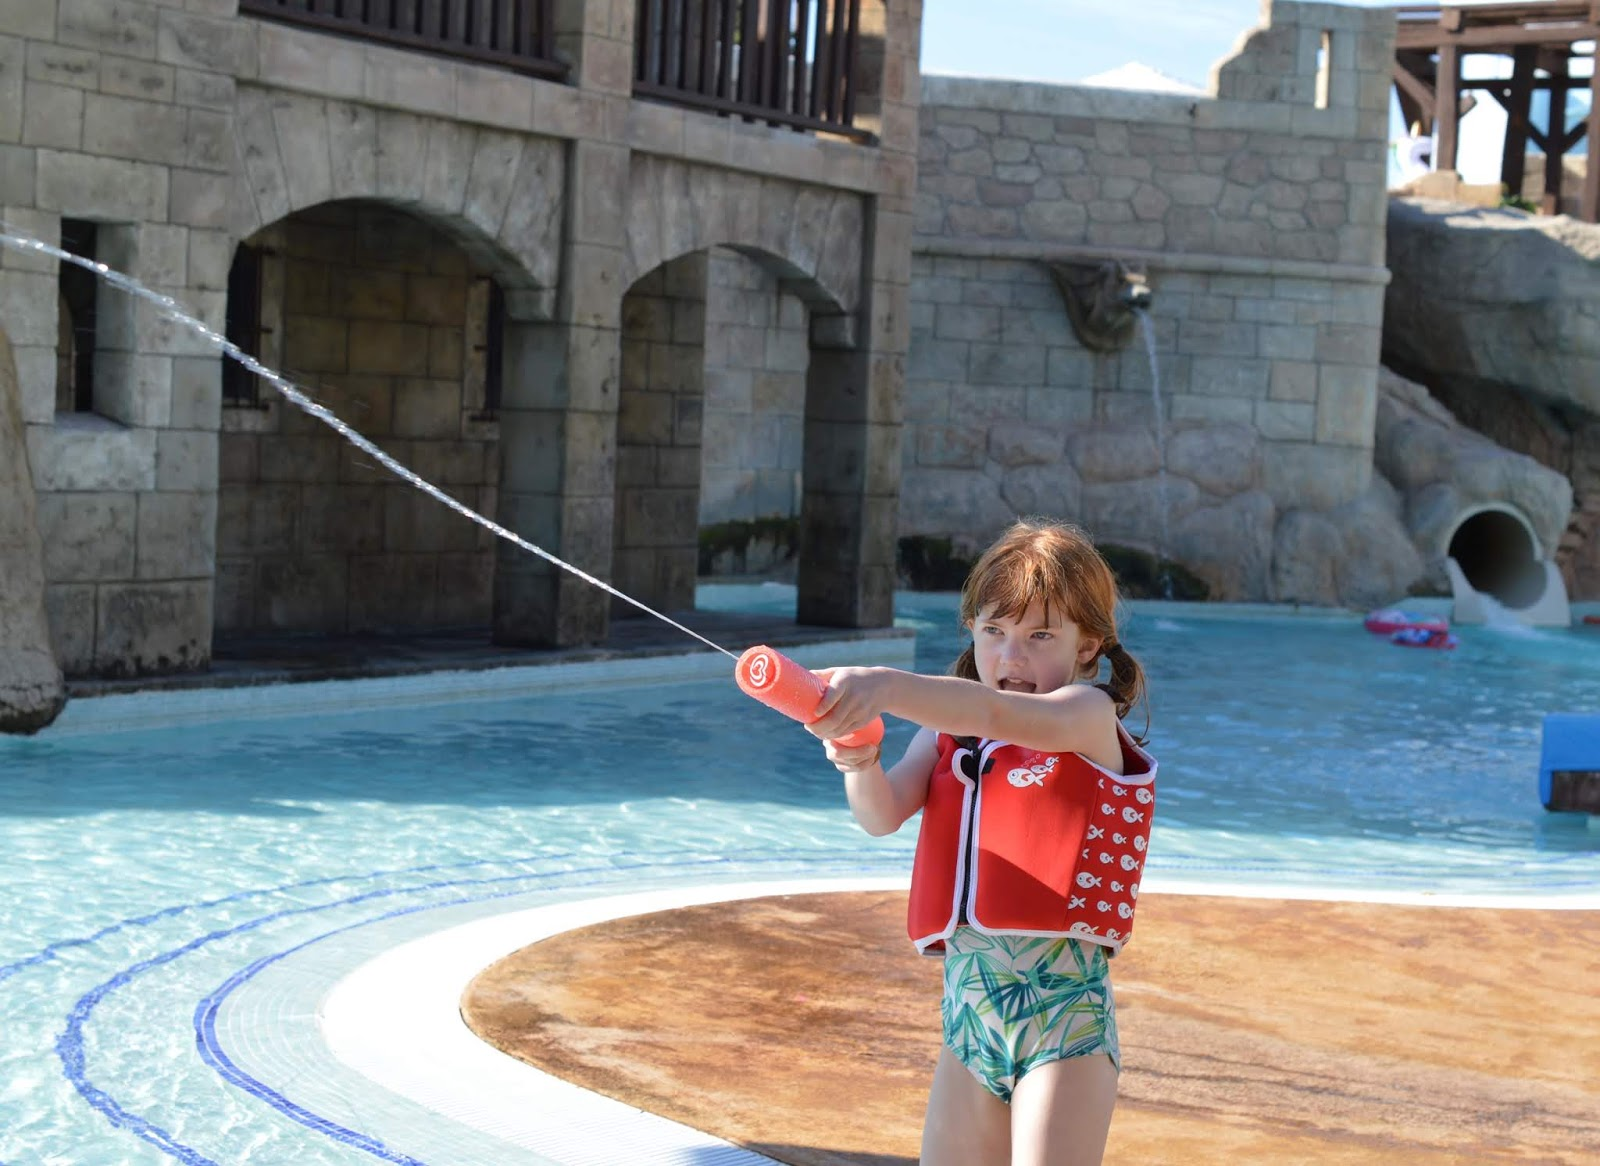 Pirate Swimming Pools and Mermaid Lessons at Pirates Village, Majorca - water fight